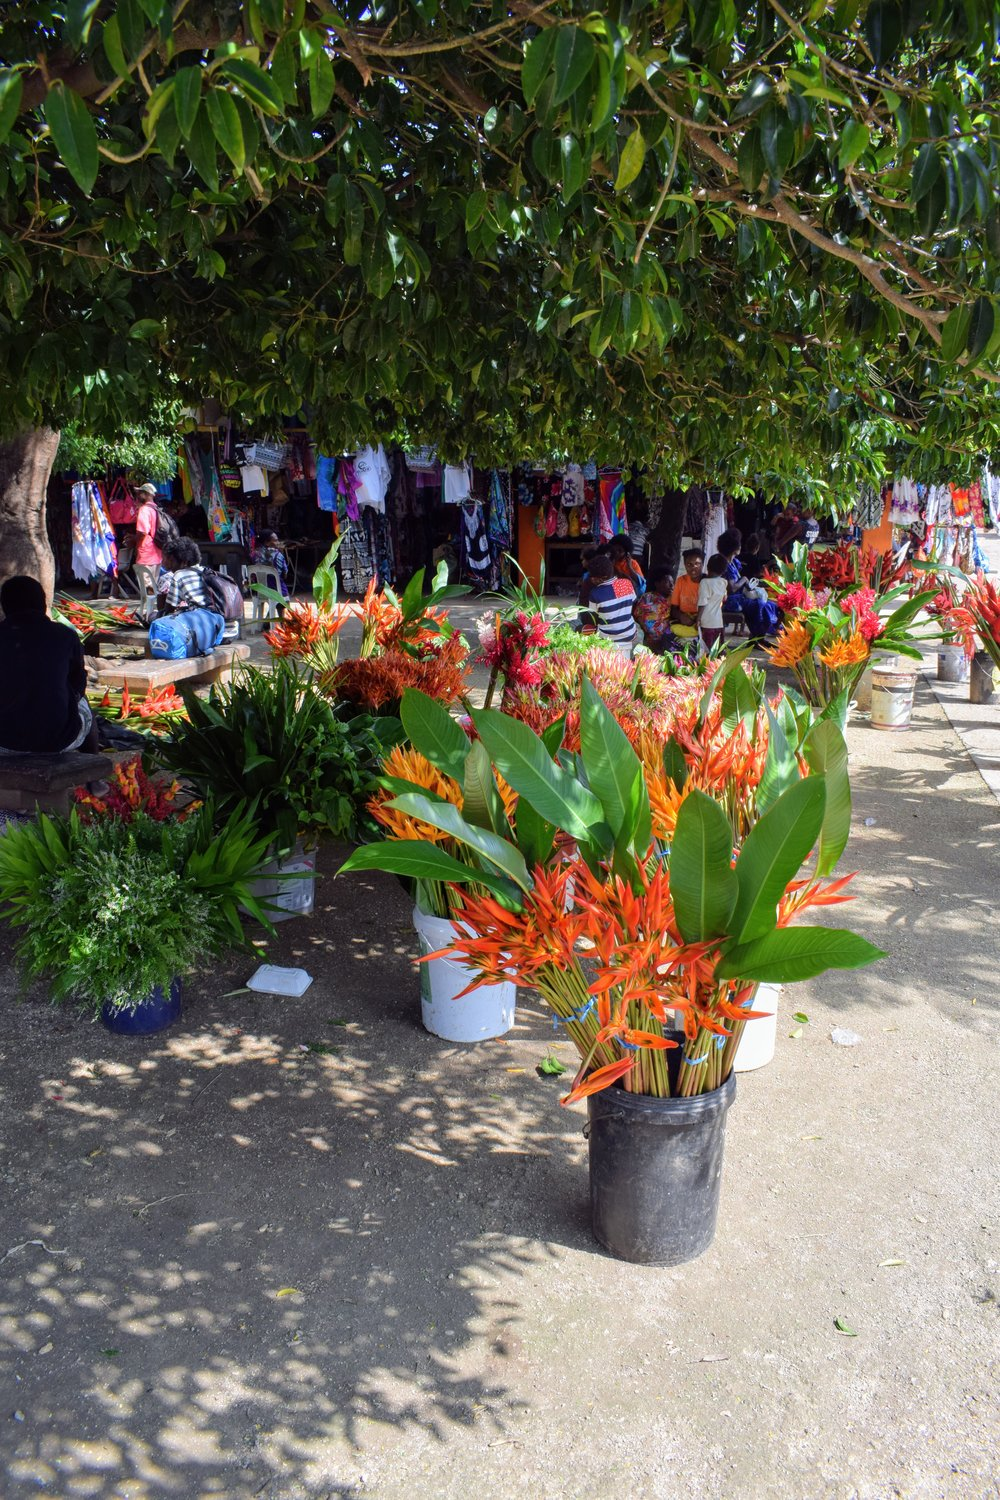 Tropical bouquets for sale outside the craft side of the market.